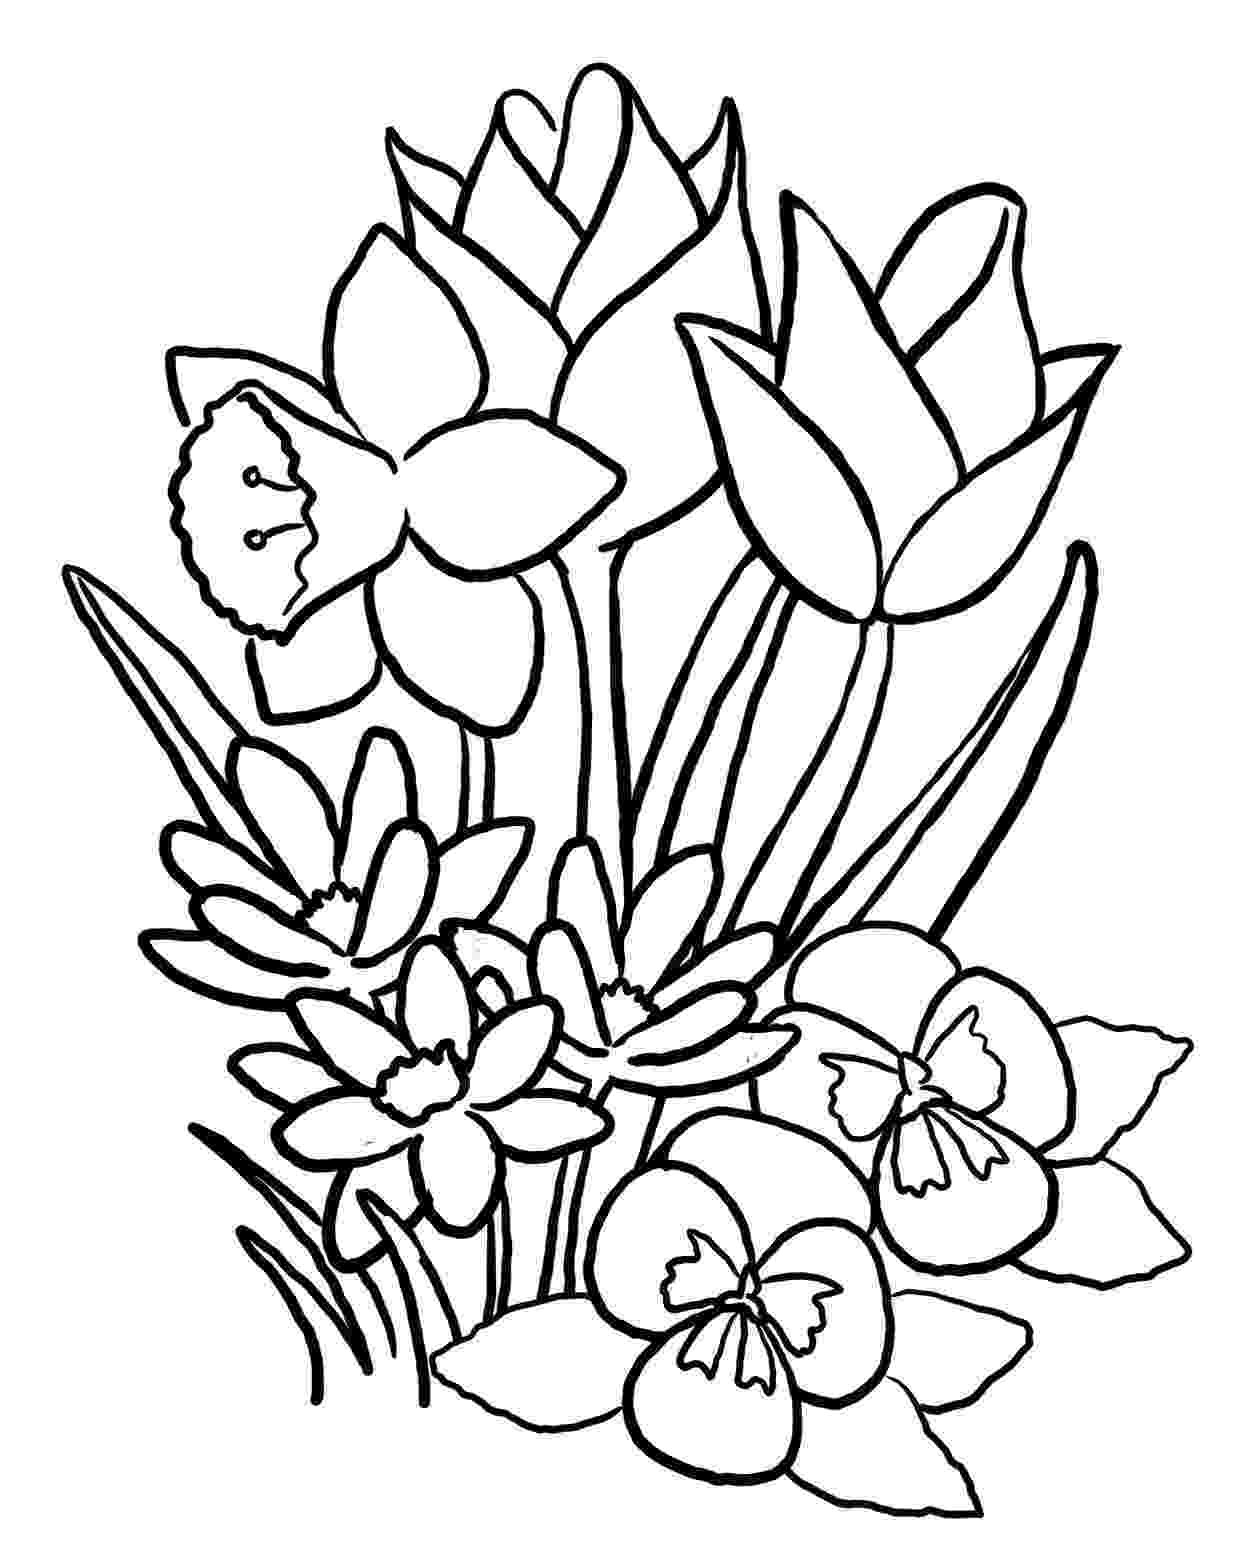 flower coloring books free printable flower coloring pages for kids best coloring books flower